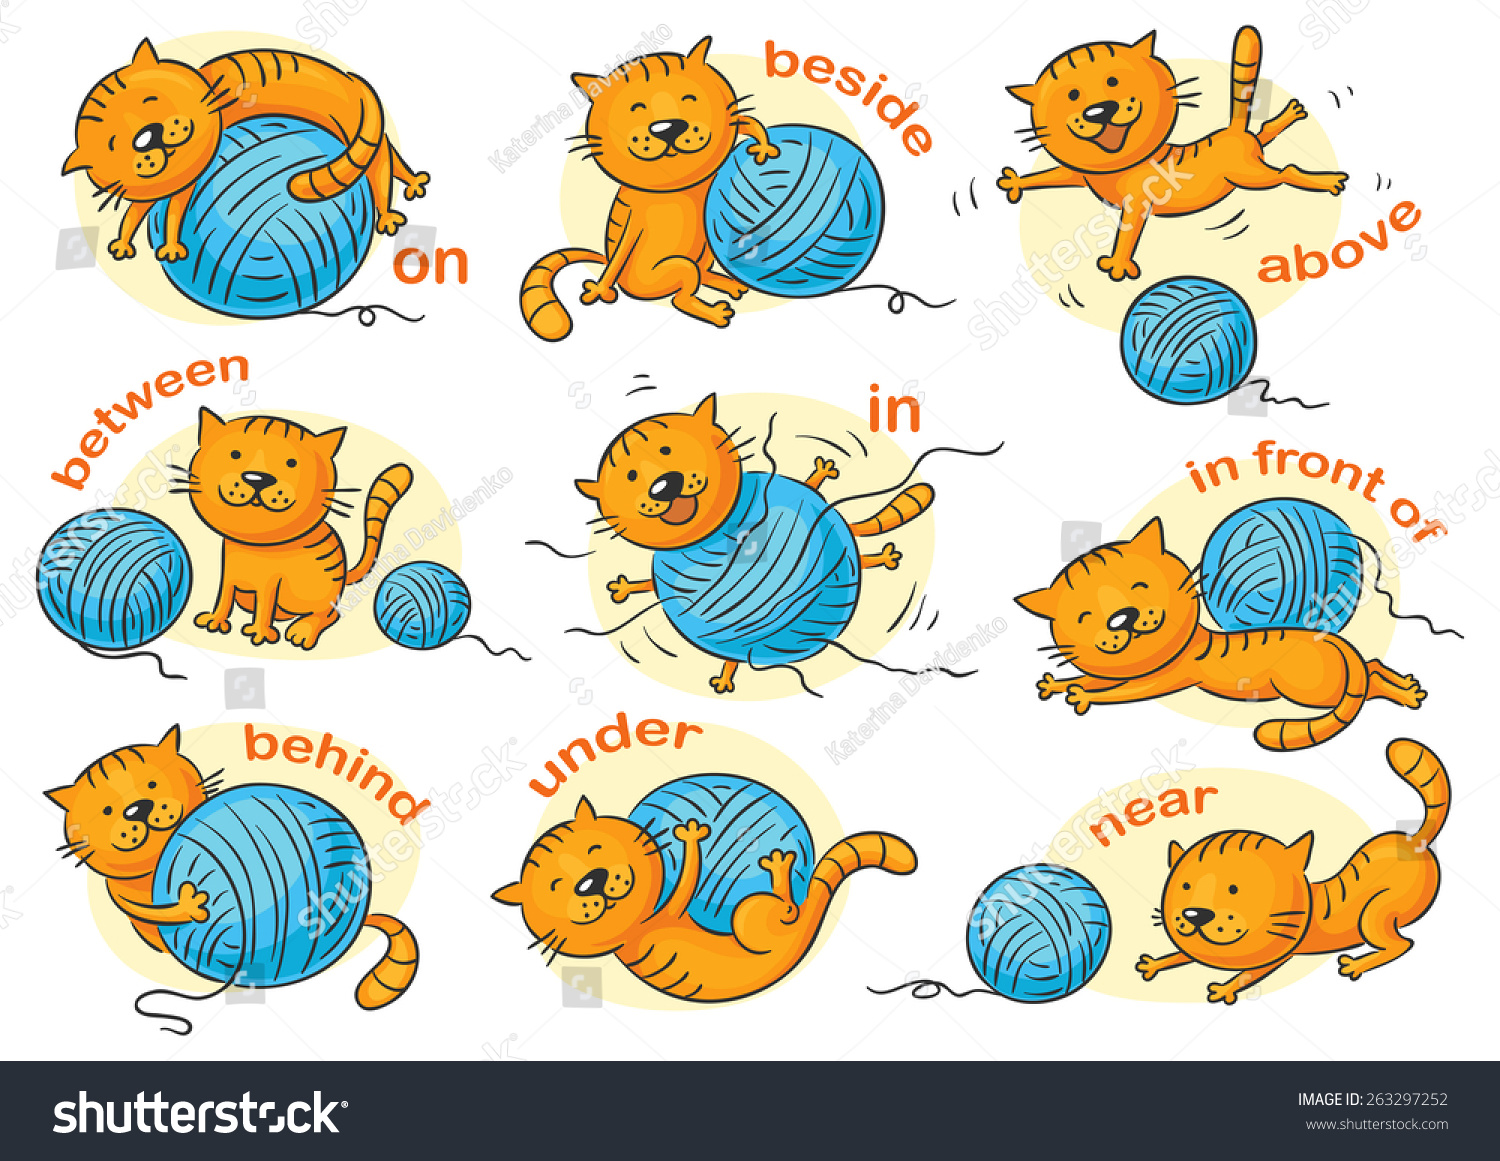 Cartoon Cat In Different Poses To Illustrate The